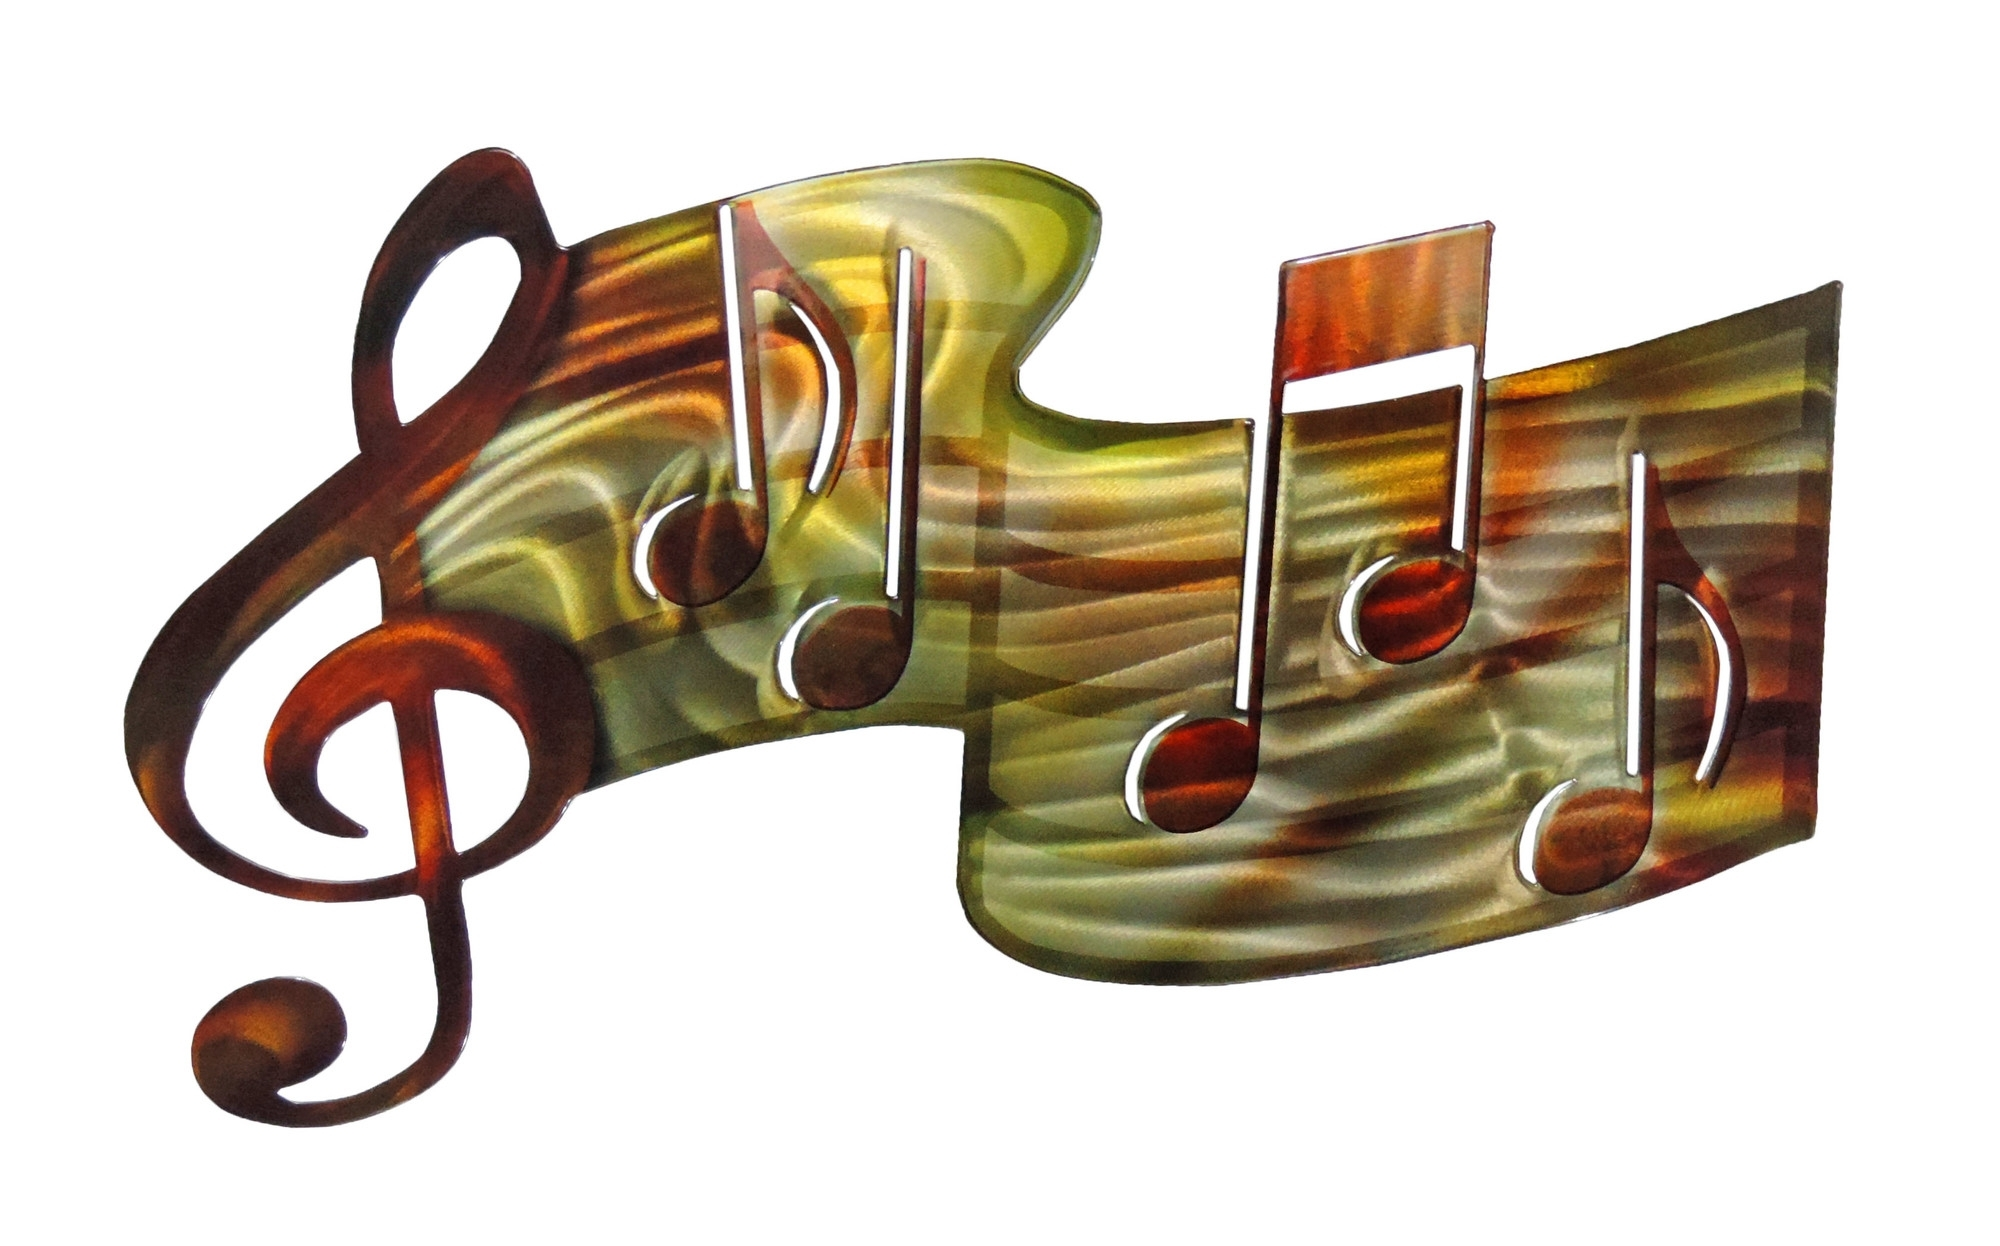 3D Music Staff – Musical Metal Wall Art Inside Latest Wall Art Metal (Gallery 16 of 20)